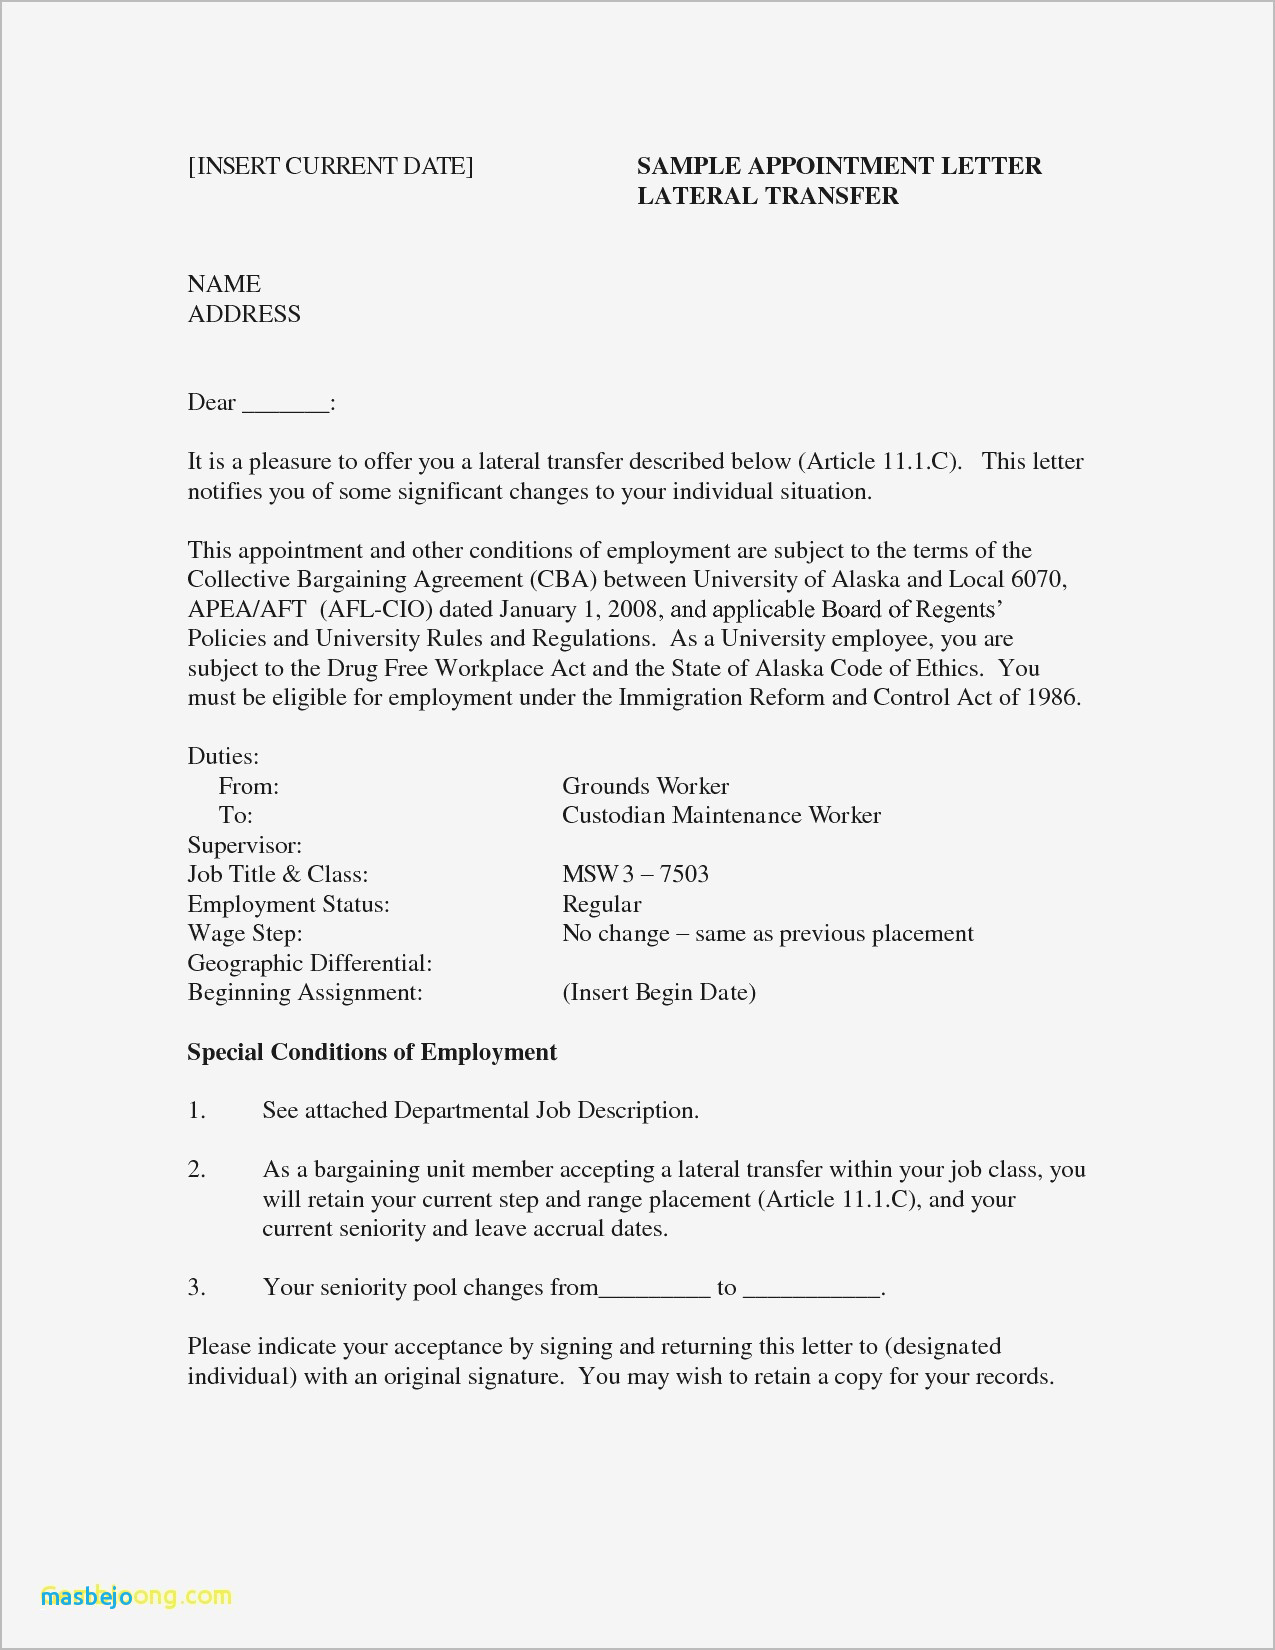 corrections officer job description resume Collection-Correctional ficer Resume Best Actor Resume Unique Actor Resumes 0d Acting Resume Format Correctional ficer Resume Correctional Ficer Job Description 7-m